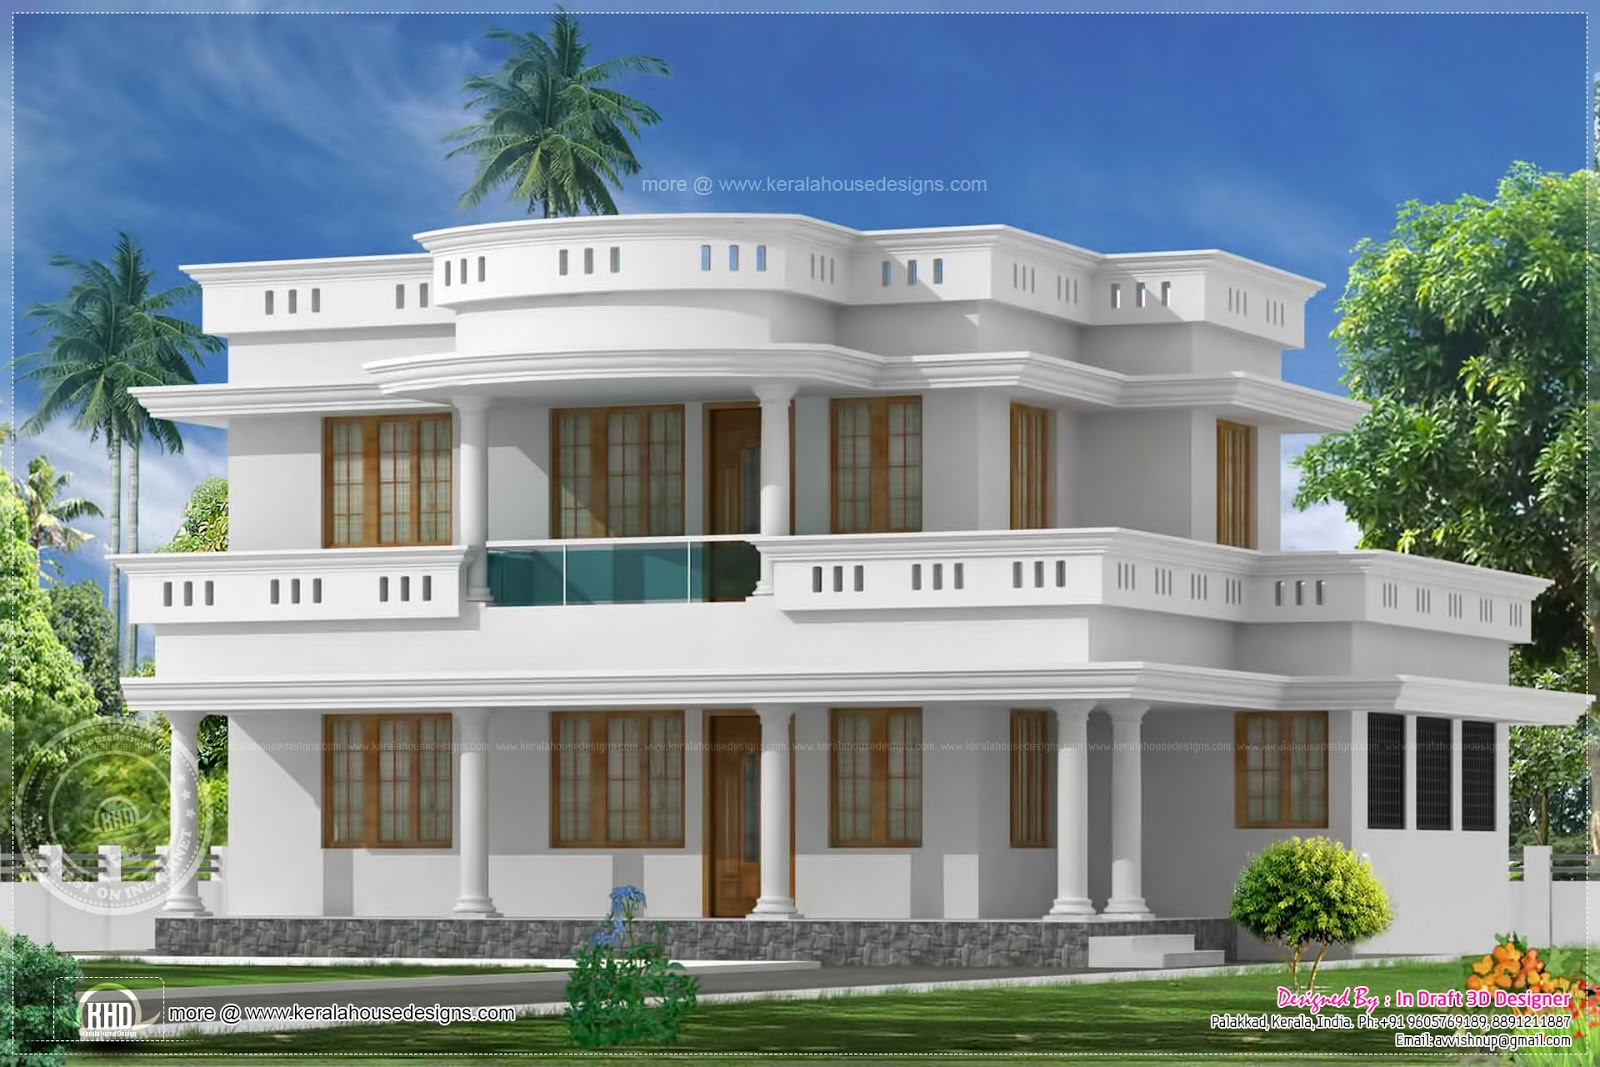 2192 square feet villa exterior design kerala home for House design pictures exterior